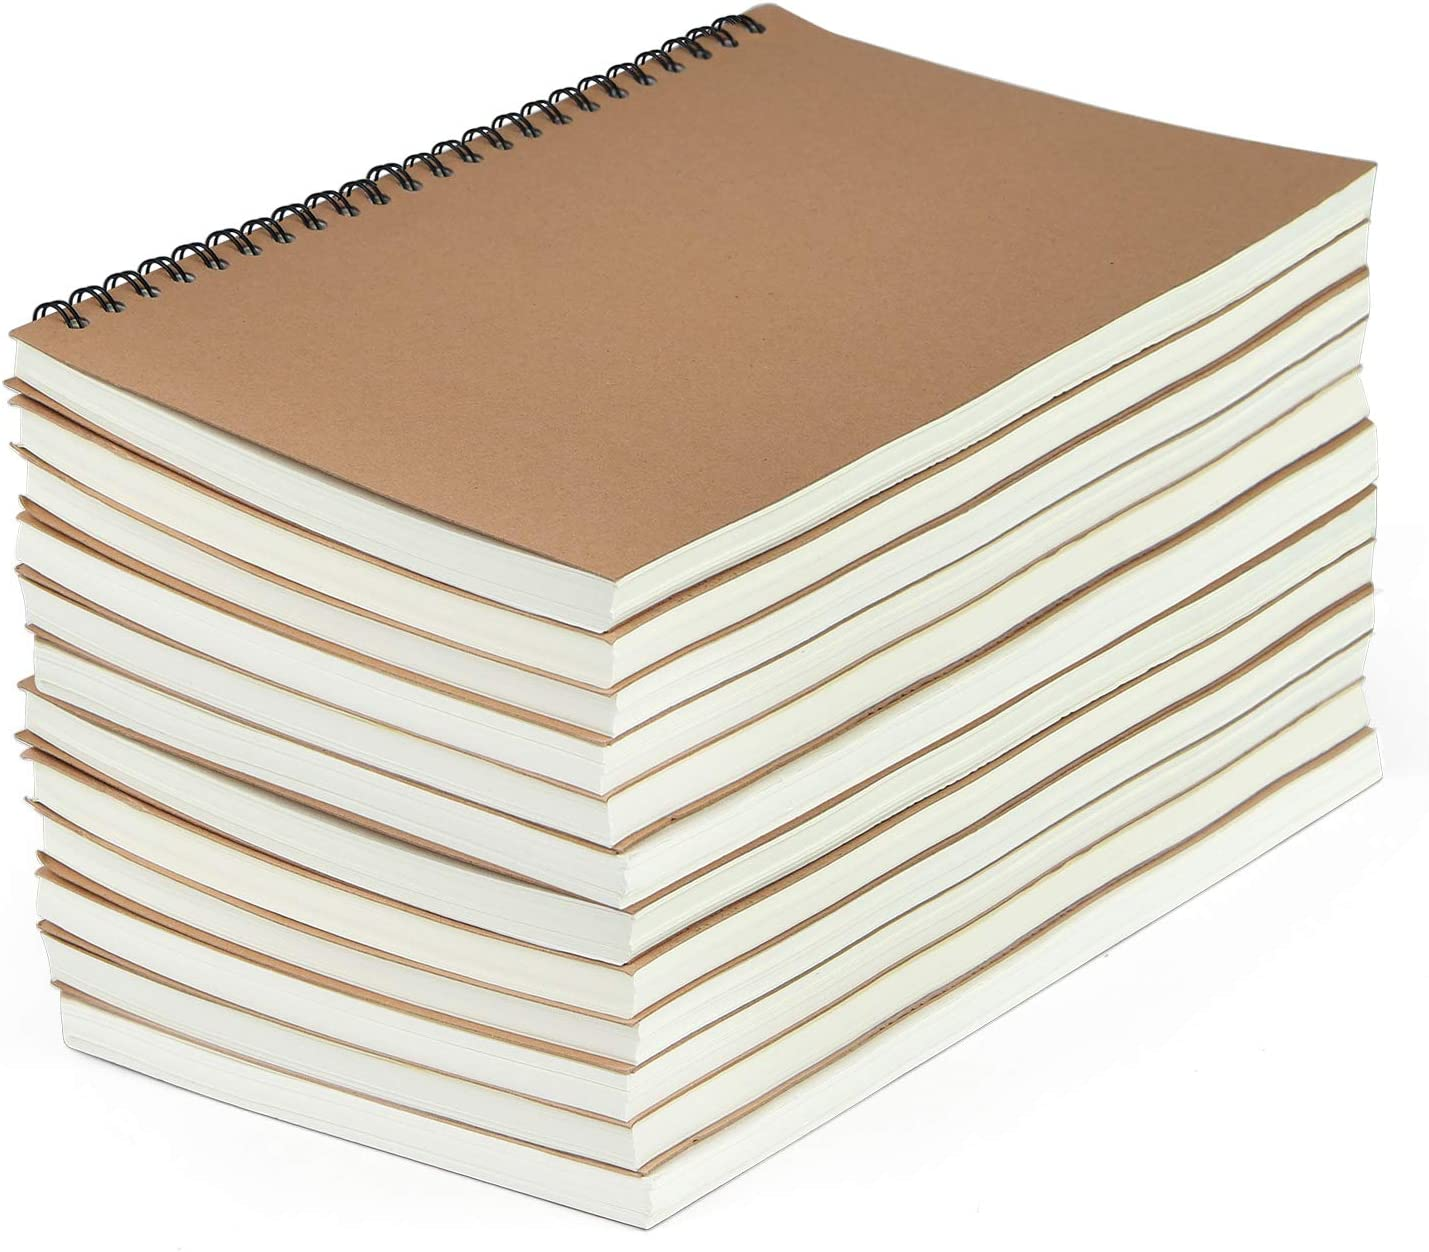 SAYAYA 12 Pack Kraft Cover Wirebound Notebooks Bulk Journals Spiral Steno Pads with Lined Paper Brown Spiral Notebooks with 120 Pages 60 Sheets Memo Notepads for Home School Travel, 8.3 x 5.5 inch